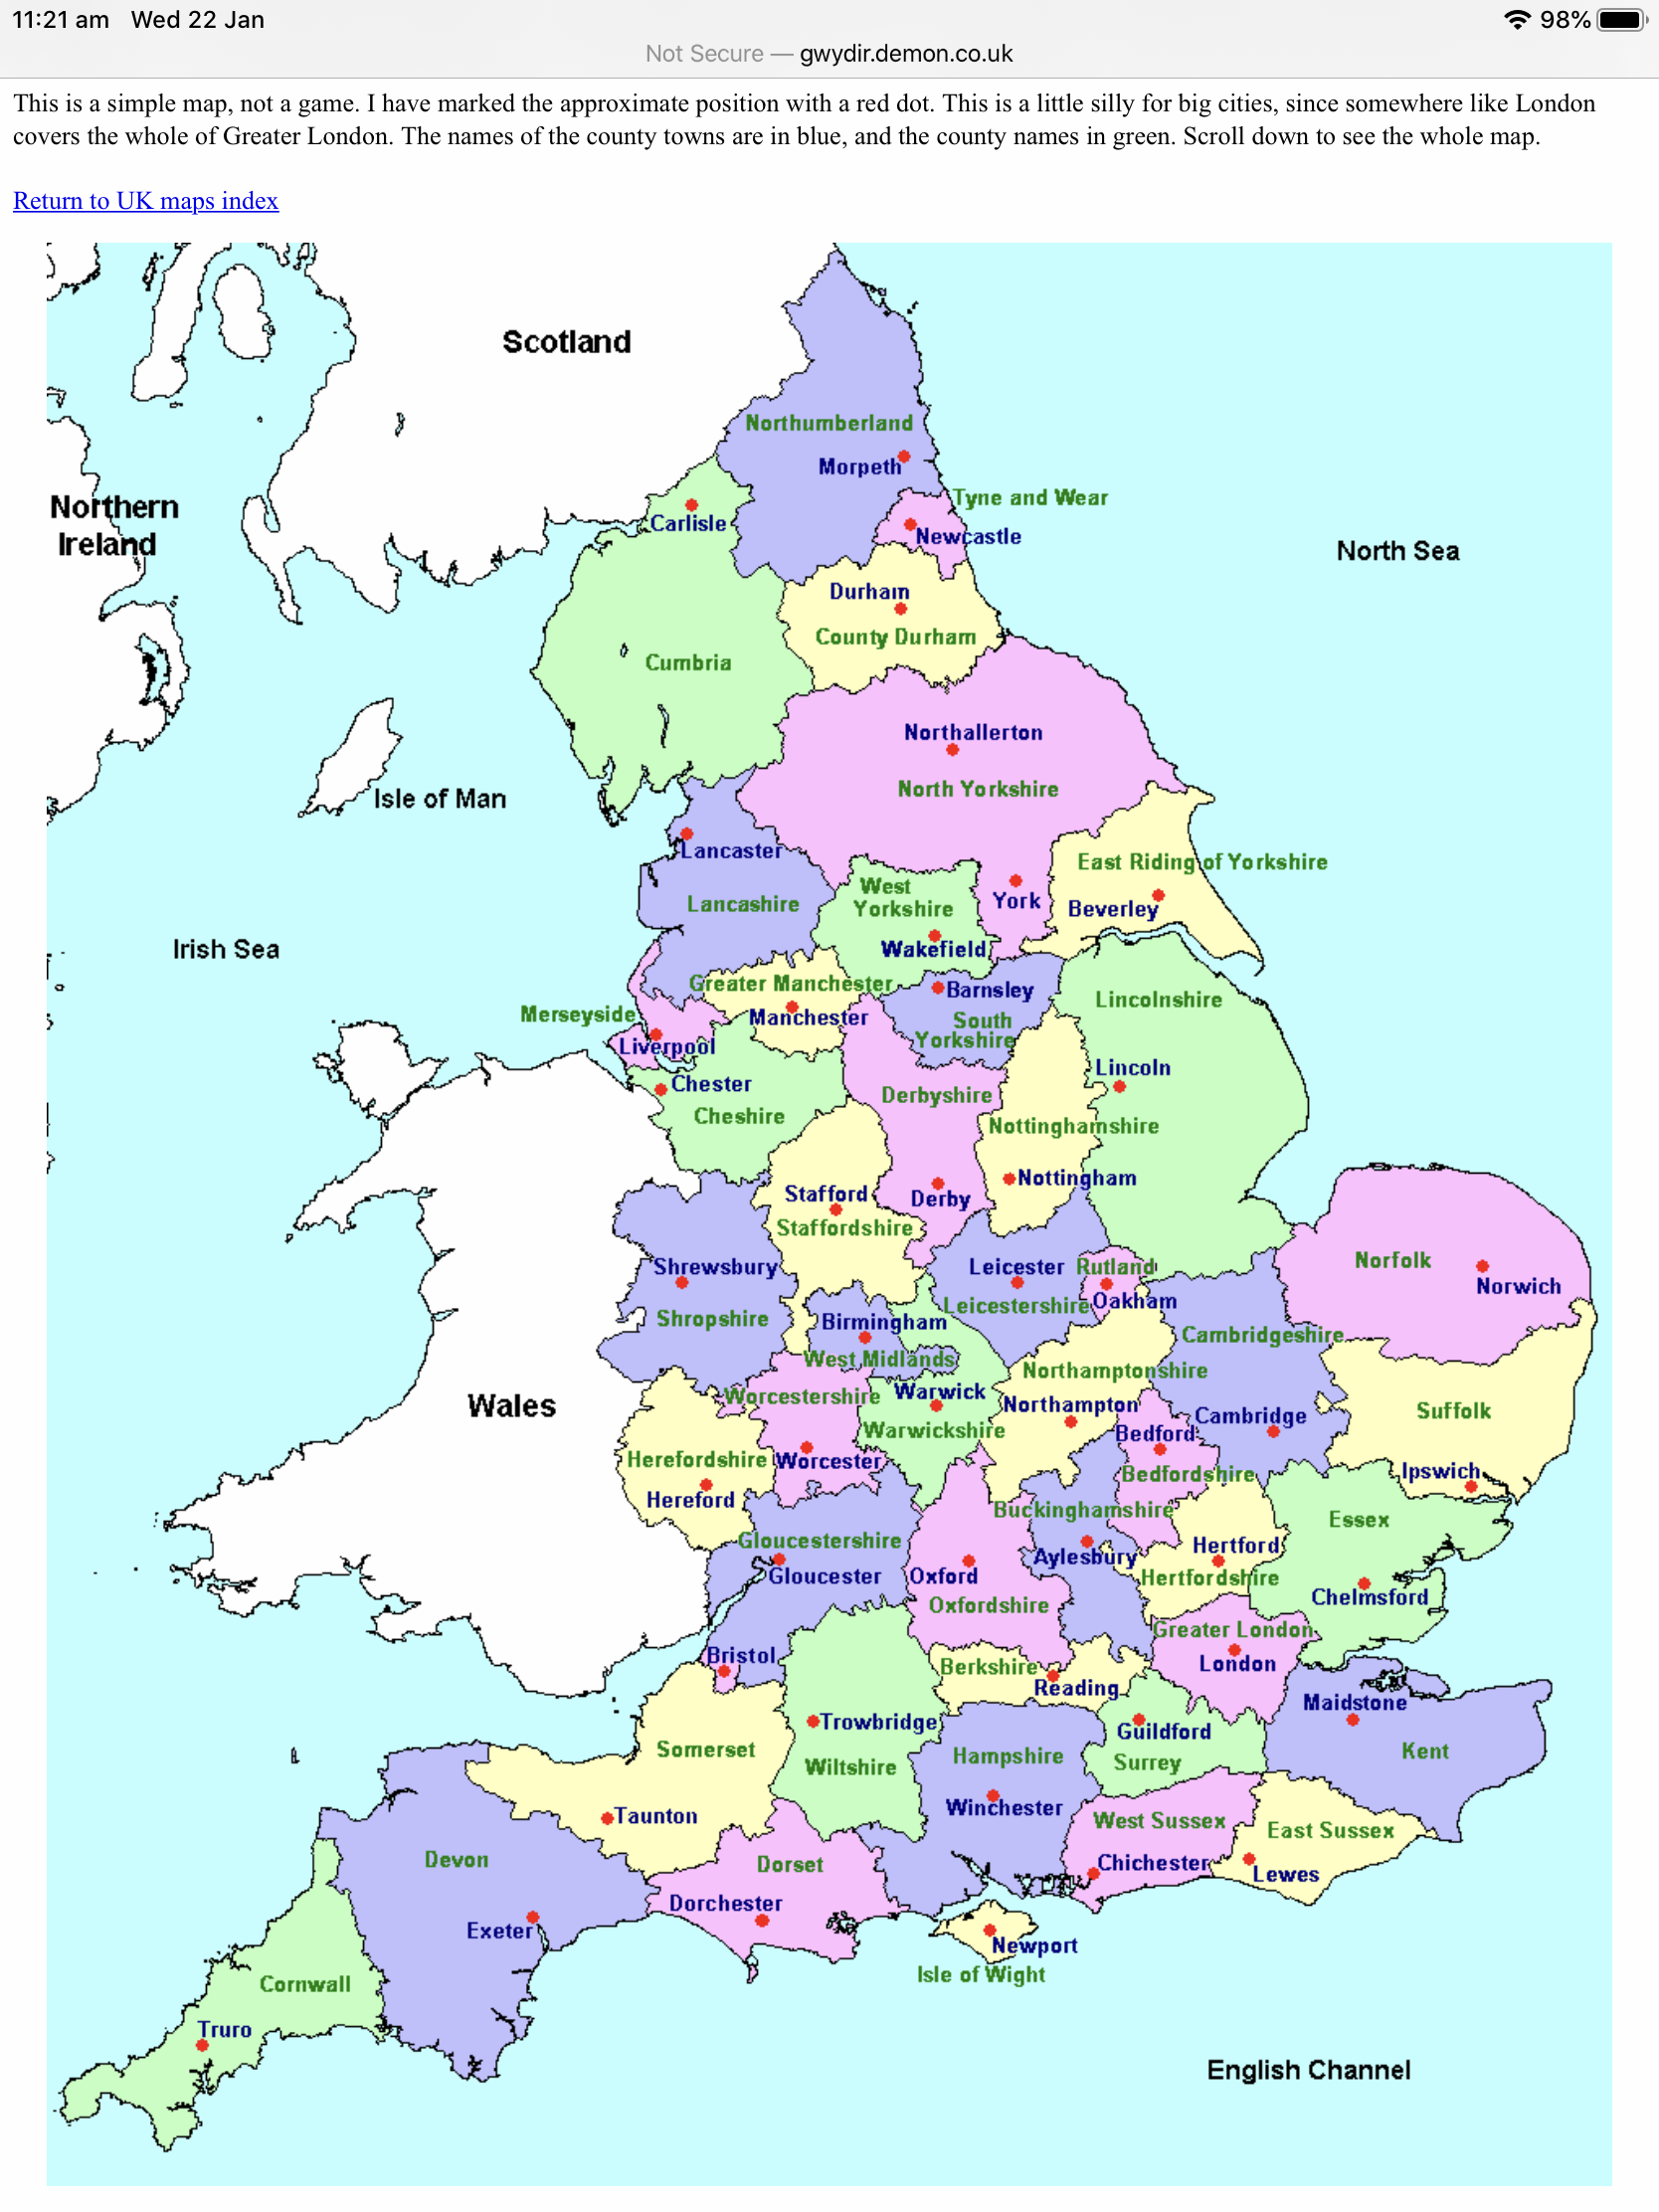 Pin By Ana Flugnacco On Maps England Map Counties Of England Map Of Great Britain